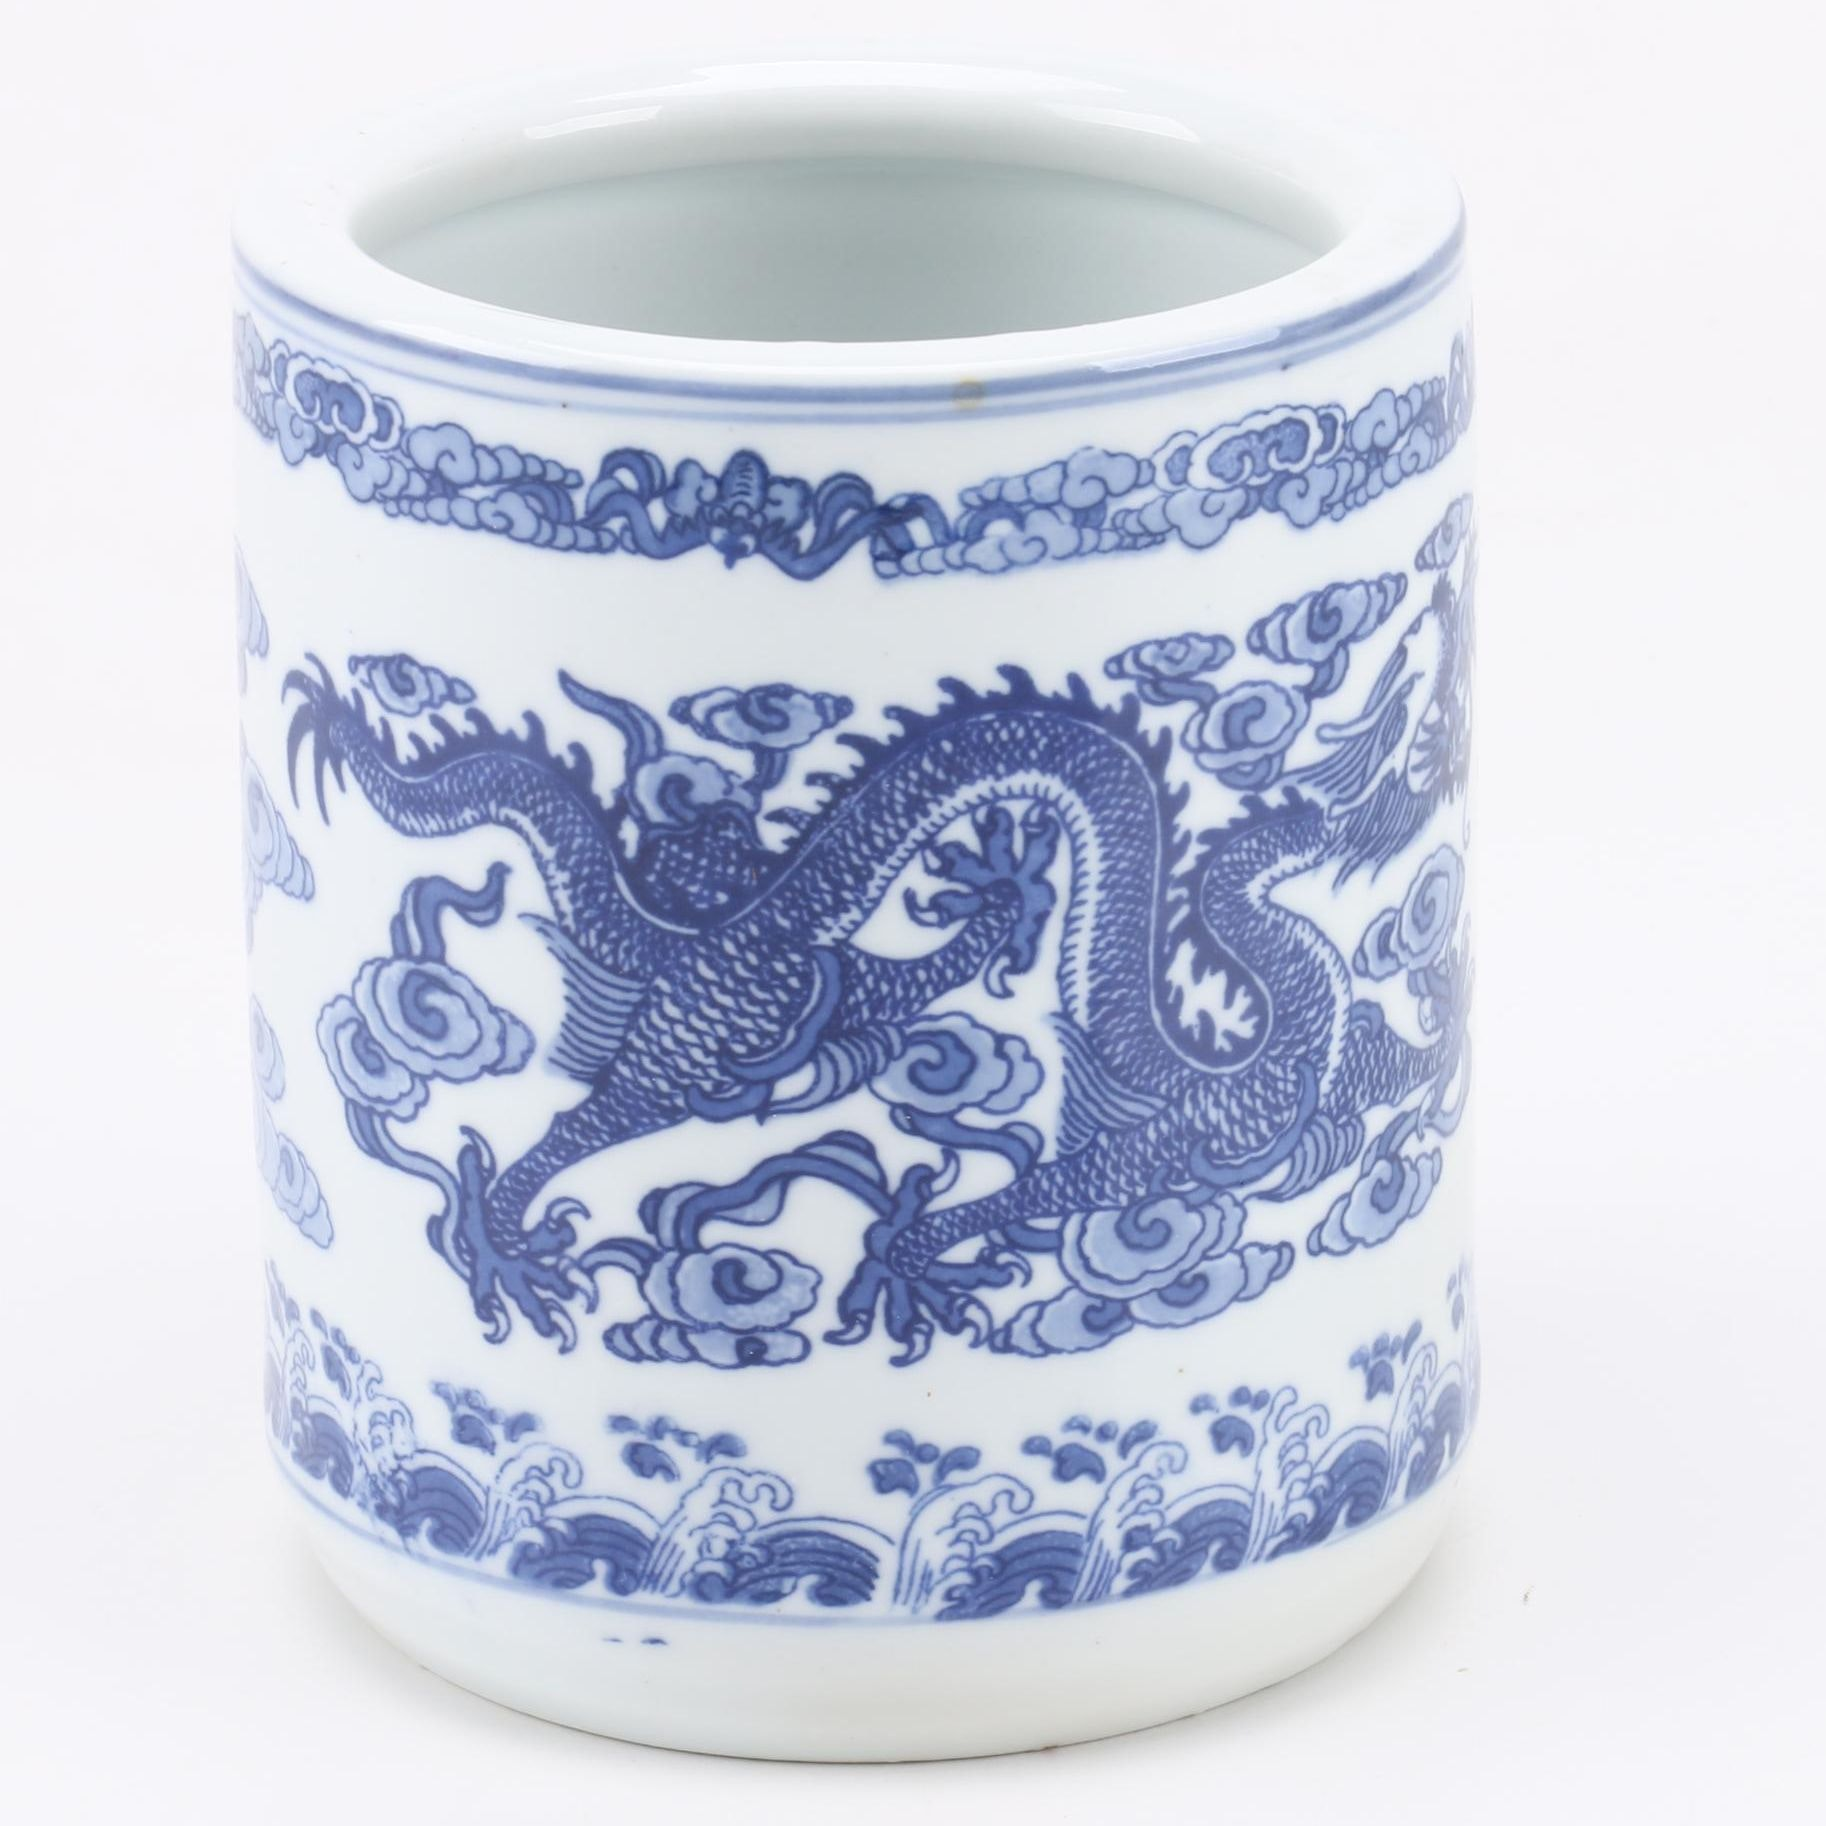 Chinese White and Blue Ceramic Vase